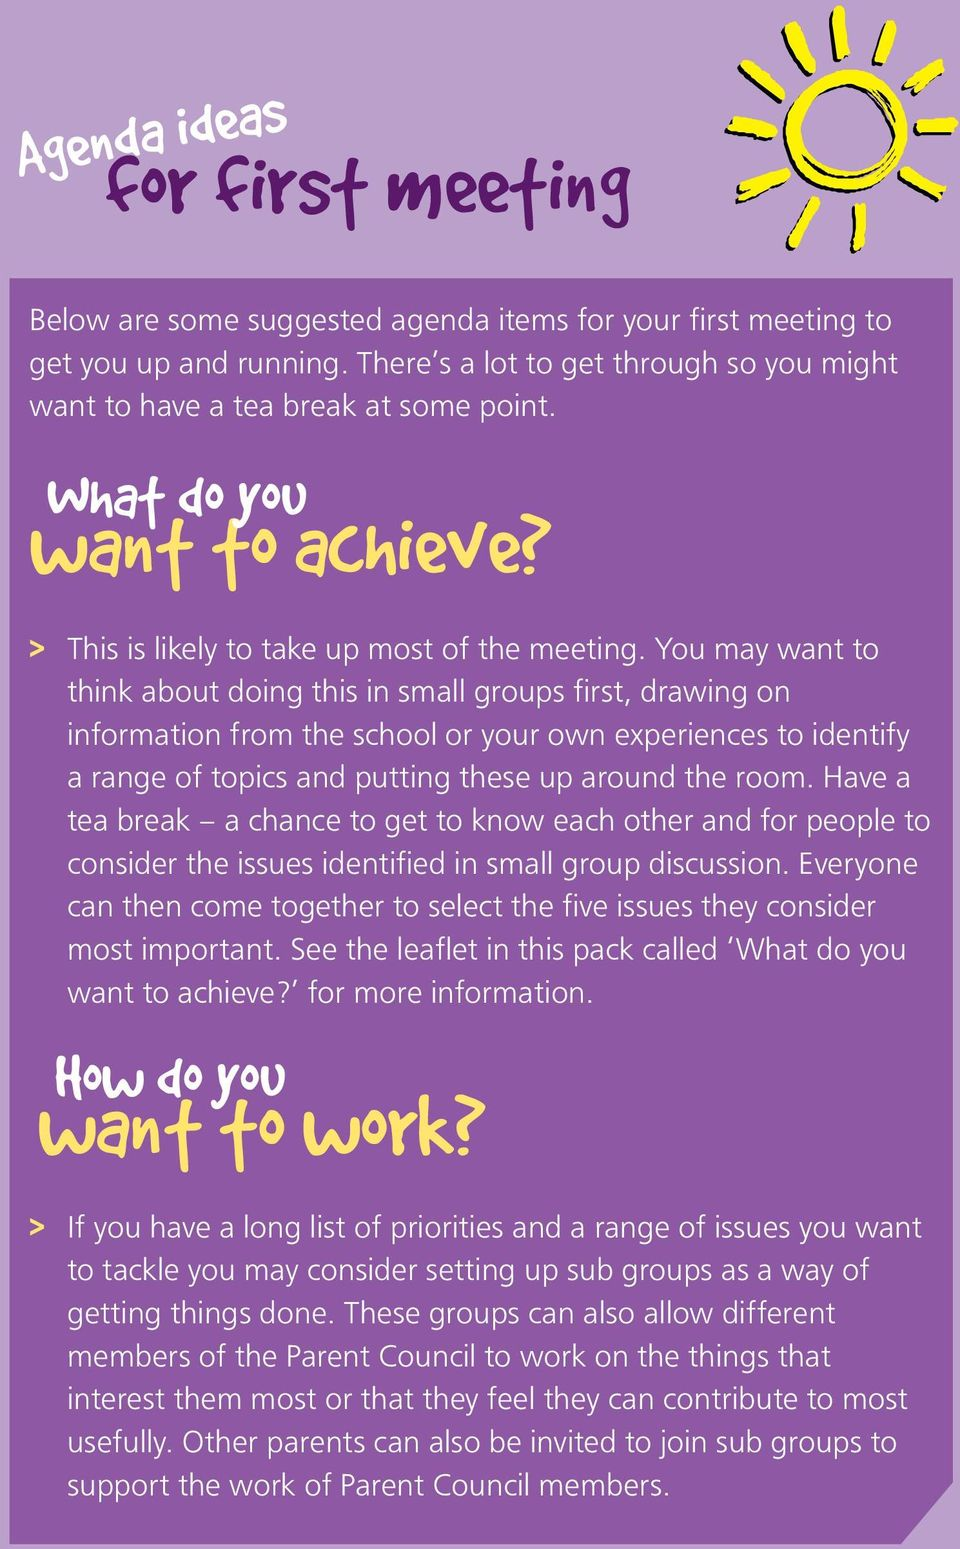 You may want to think about doing this in small groups first, drawing on information from the school or your own experiences to identify a range of topics and putting these up around the room.